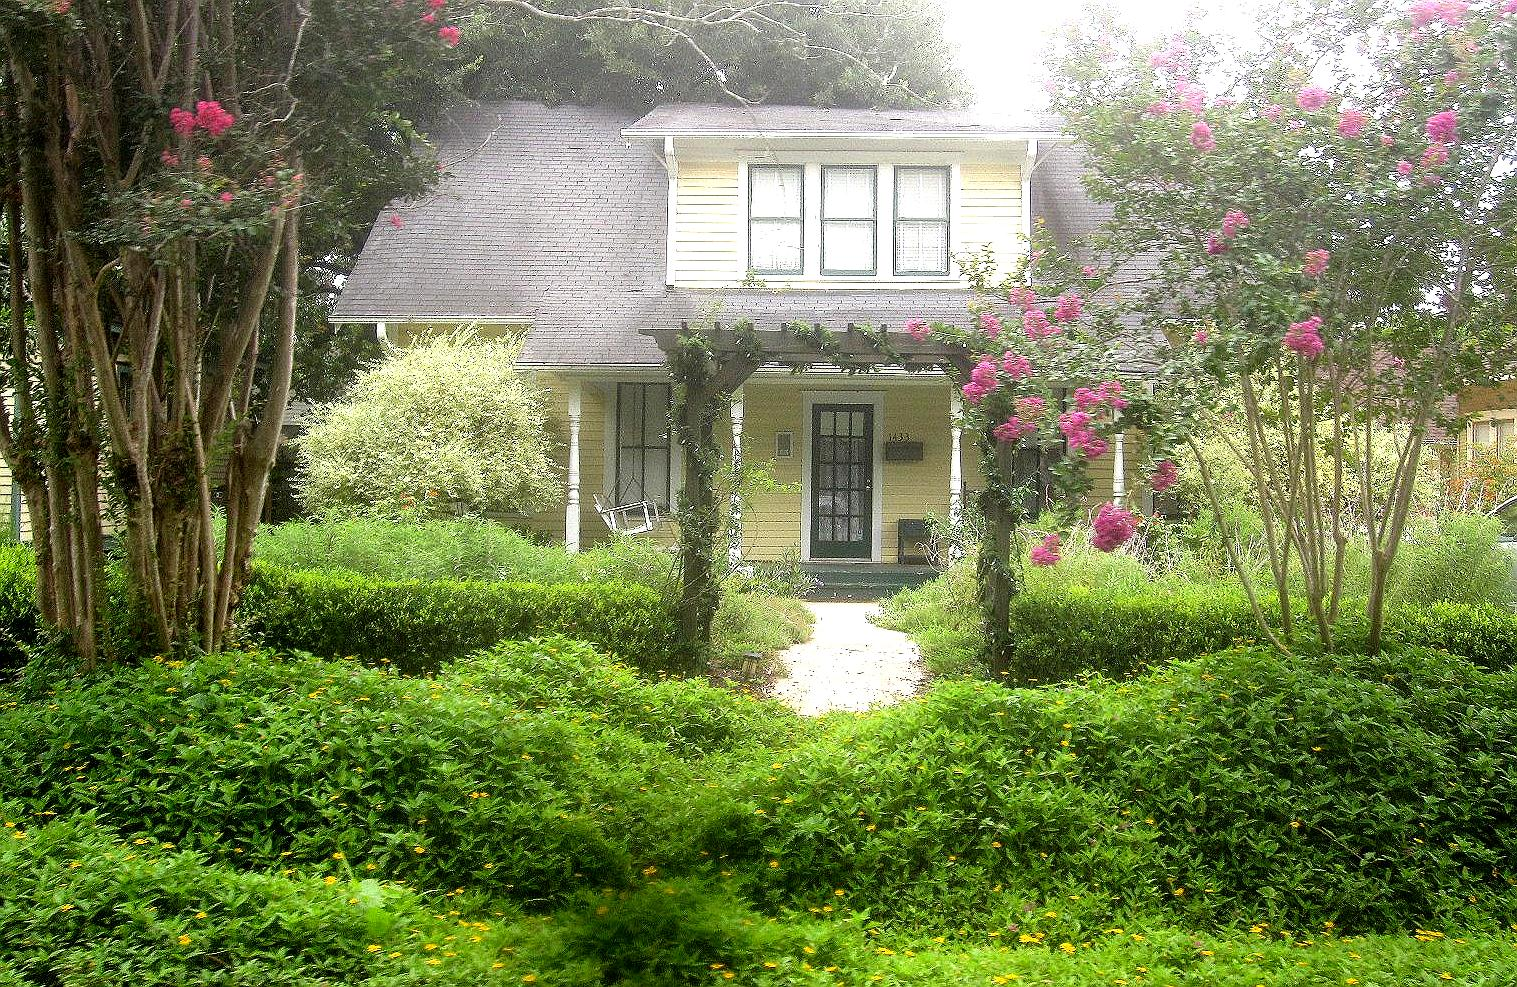 the other houston houston bungalow cottage gardens - Front Yard Cottage Garden Ideas